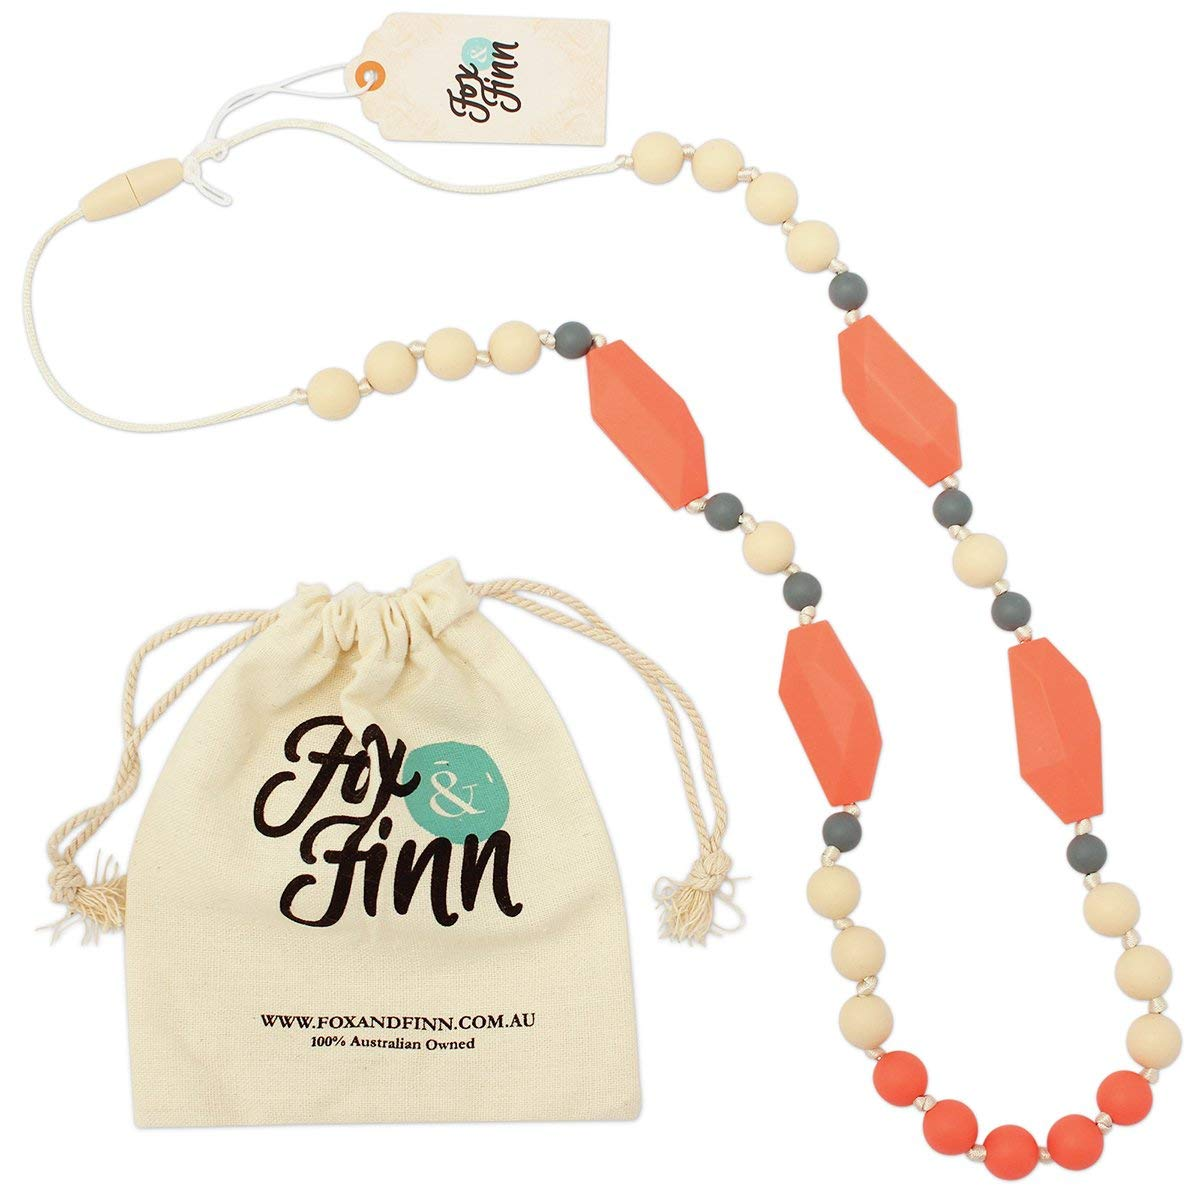 Does Not Pull Out Hair sweet marsala + smoke 15 Inch Drop Safety Knotted Silk Rope Fox and Finn Avery Silicone Teething Necklace for Babies